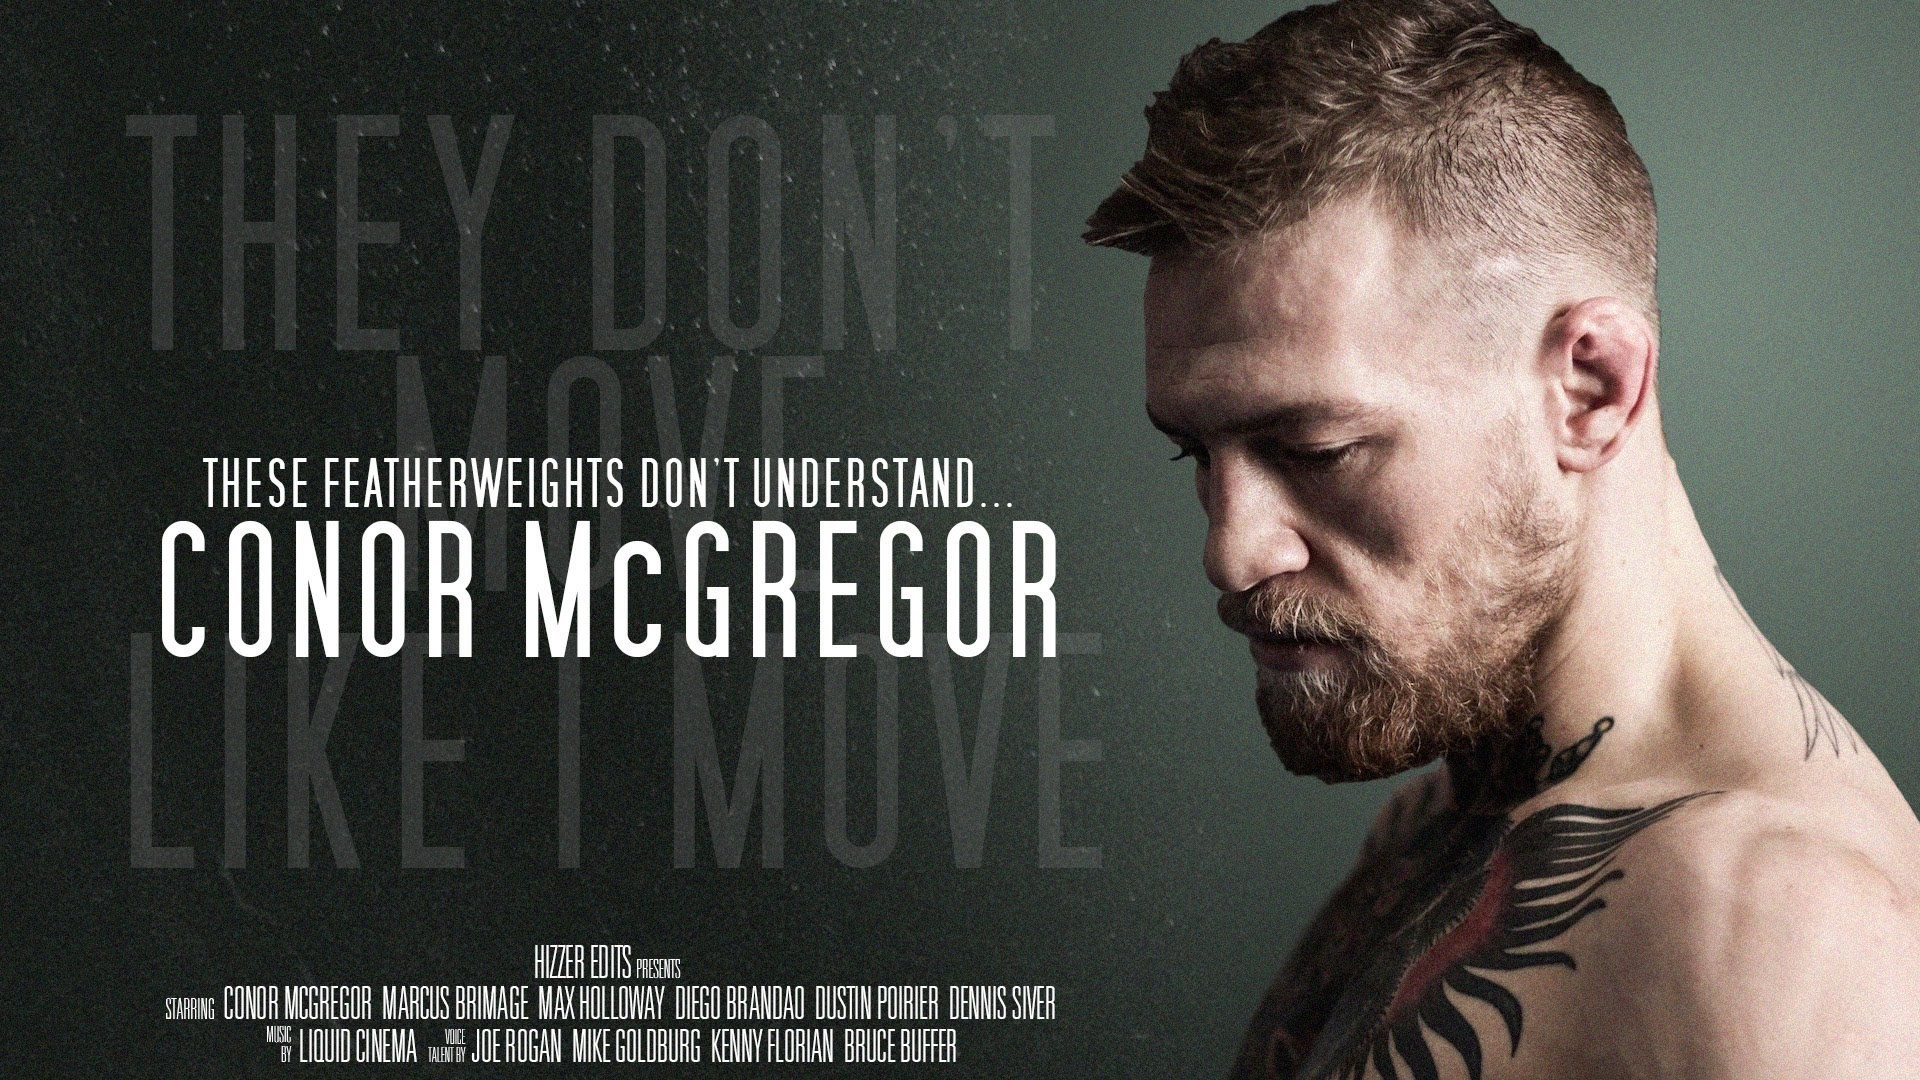 Connor Mcgregor Quote Wallpaper Conor Mcgregor Wallpapers 76 Background Pictures